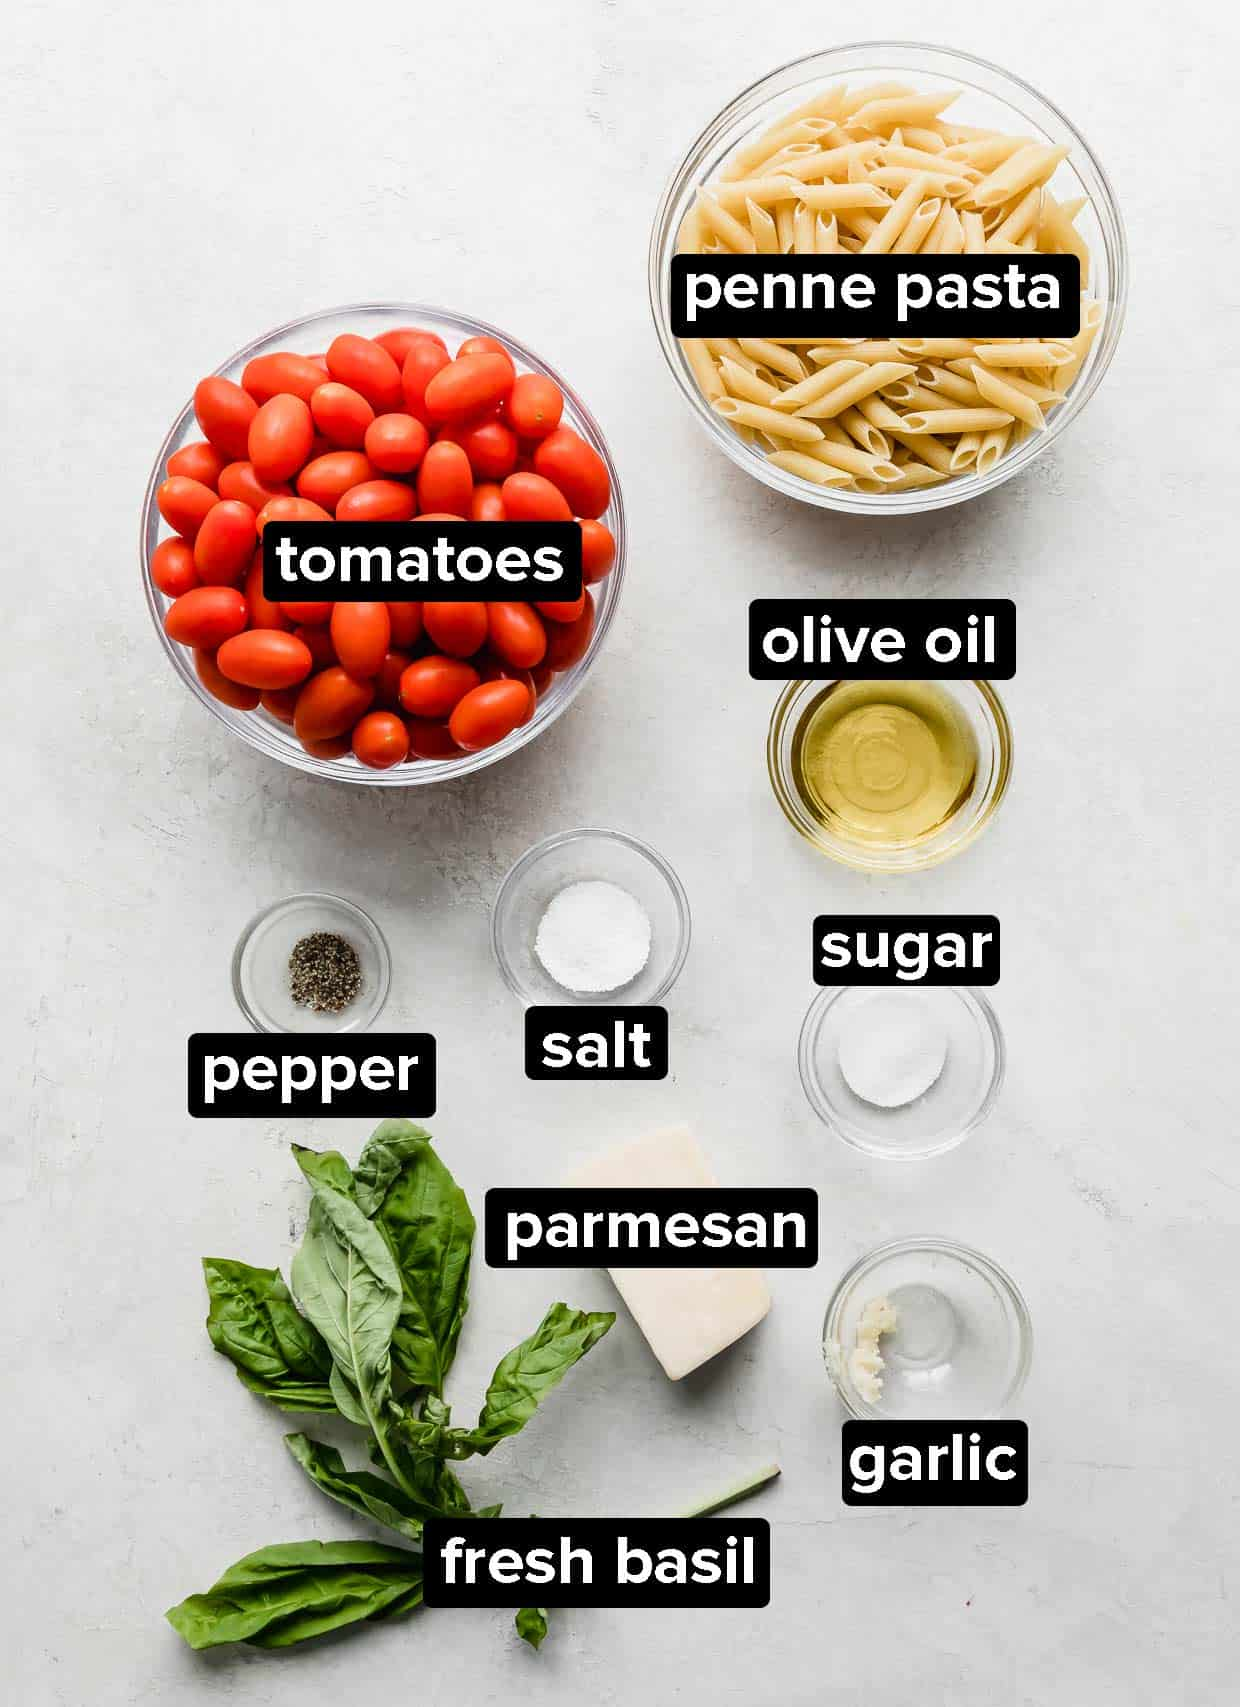 Ingredients used to make penne al Pomodoro on a white background.